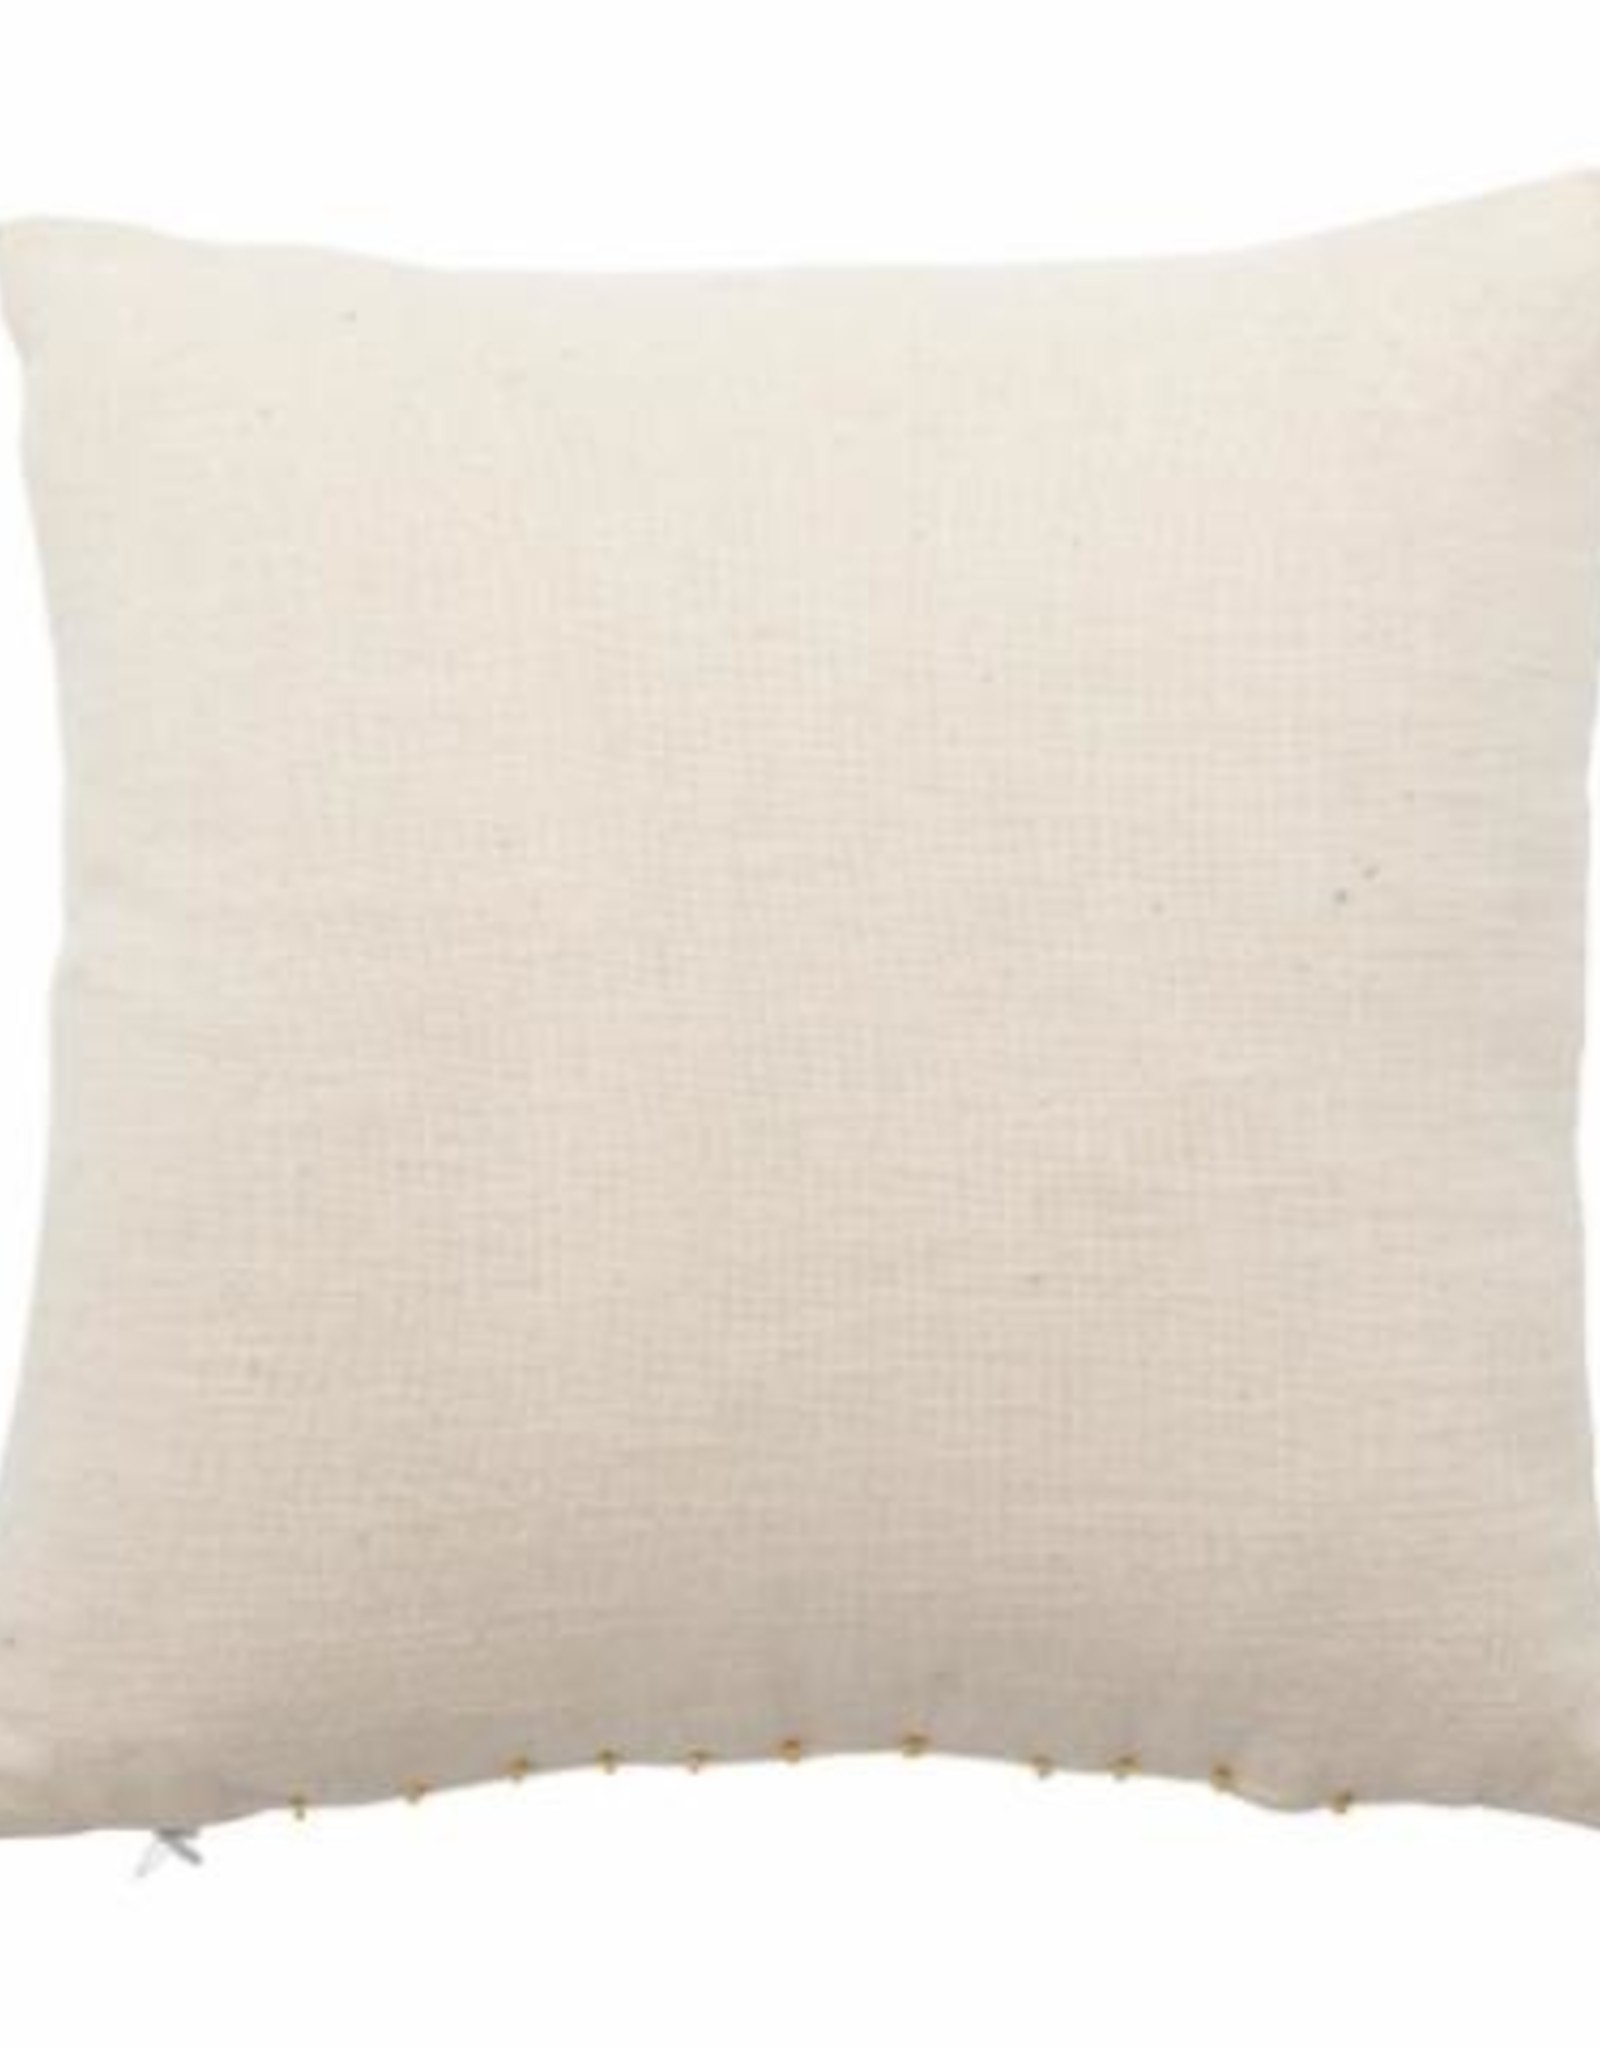 Bloomingville Bloomingville - Ebell cushion white cotton 40x40